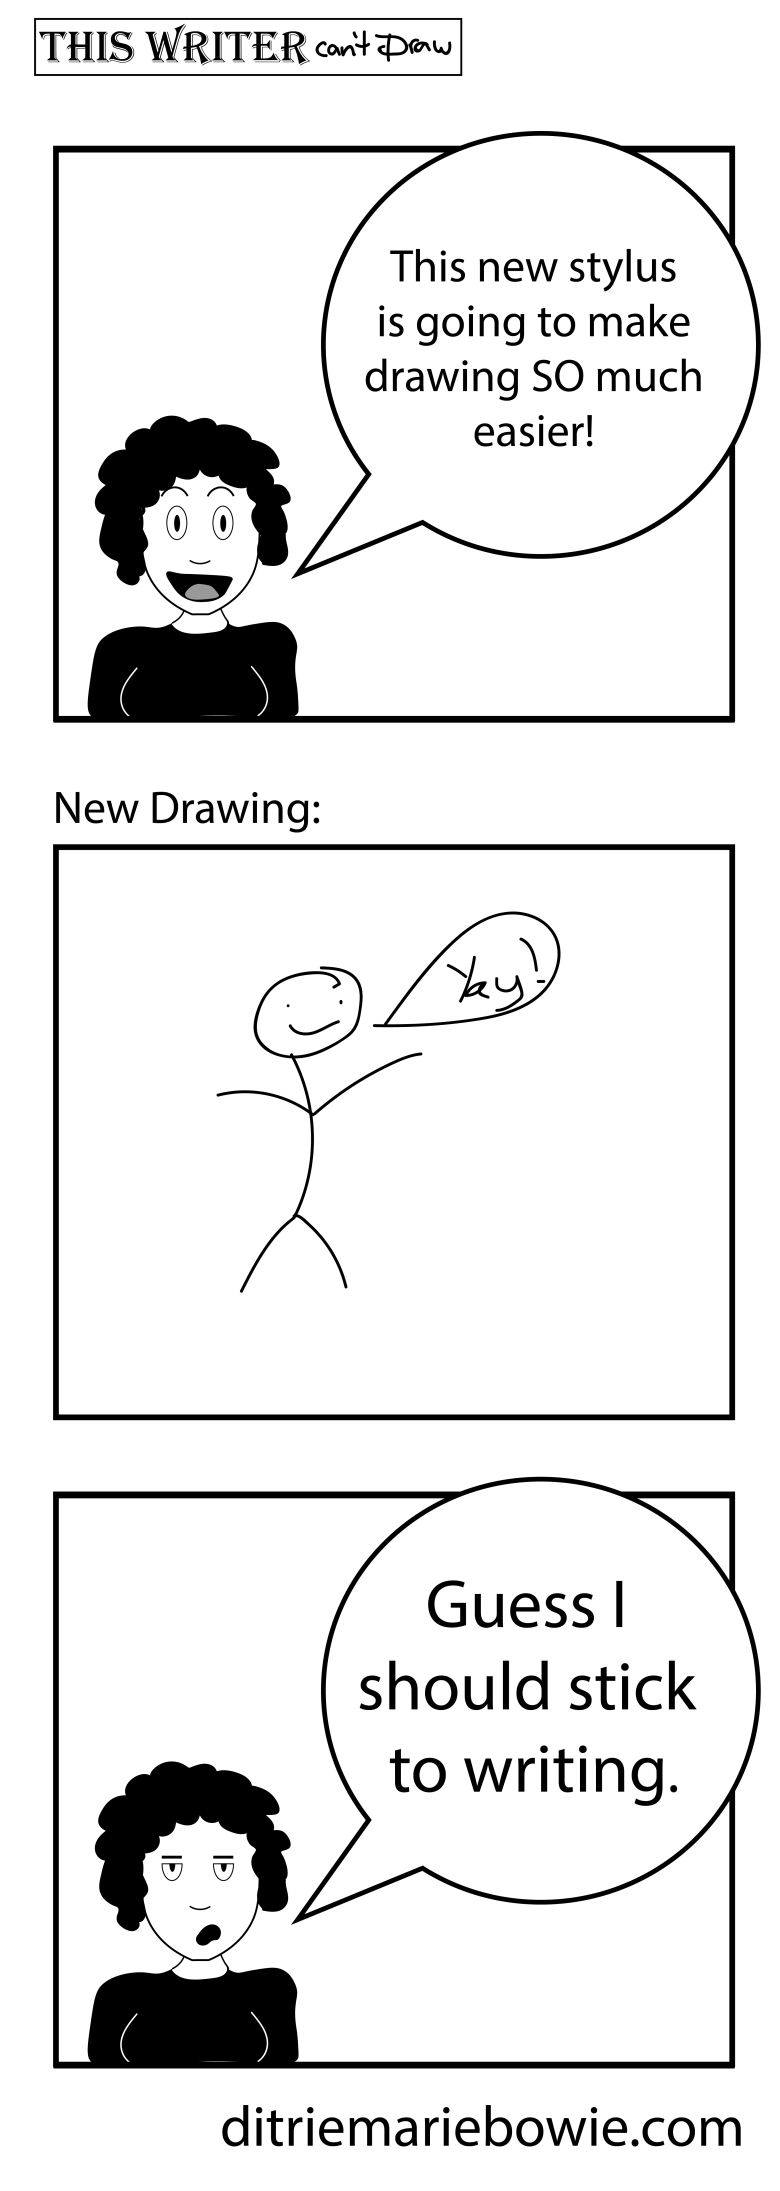 This new stylus is going to make drawing so much easier! Drawing turns out terrible. Guess I should stick to writing.